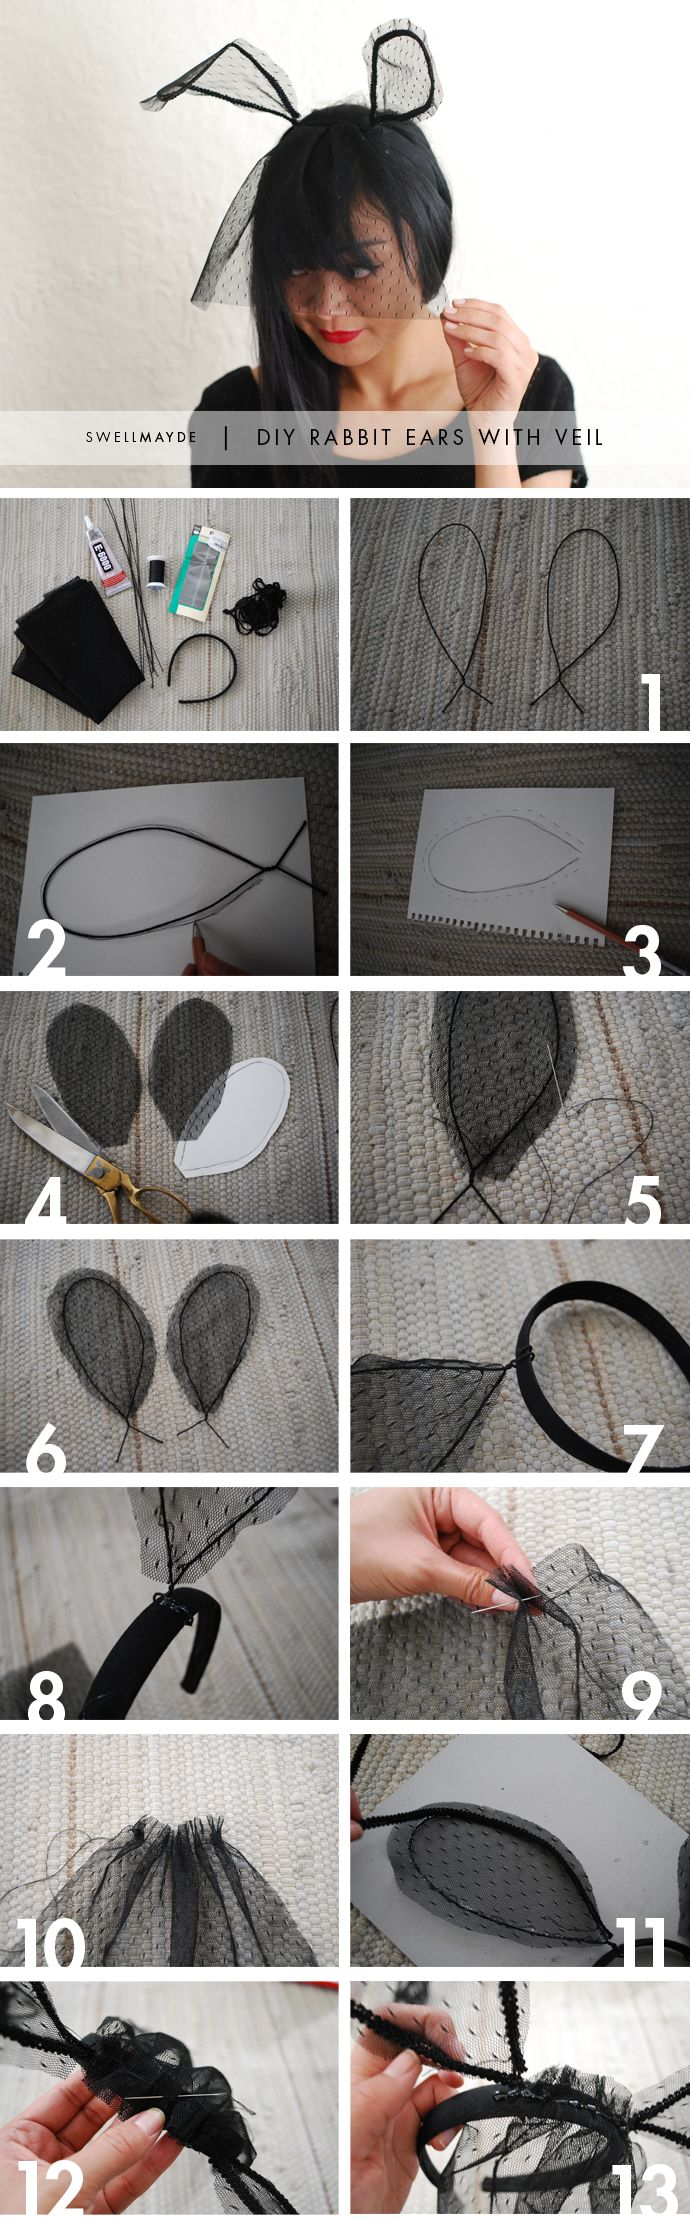 swellmayde: HALLOWEEN DIY | RABBIT EARS WITH A VEIL